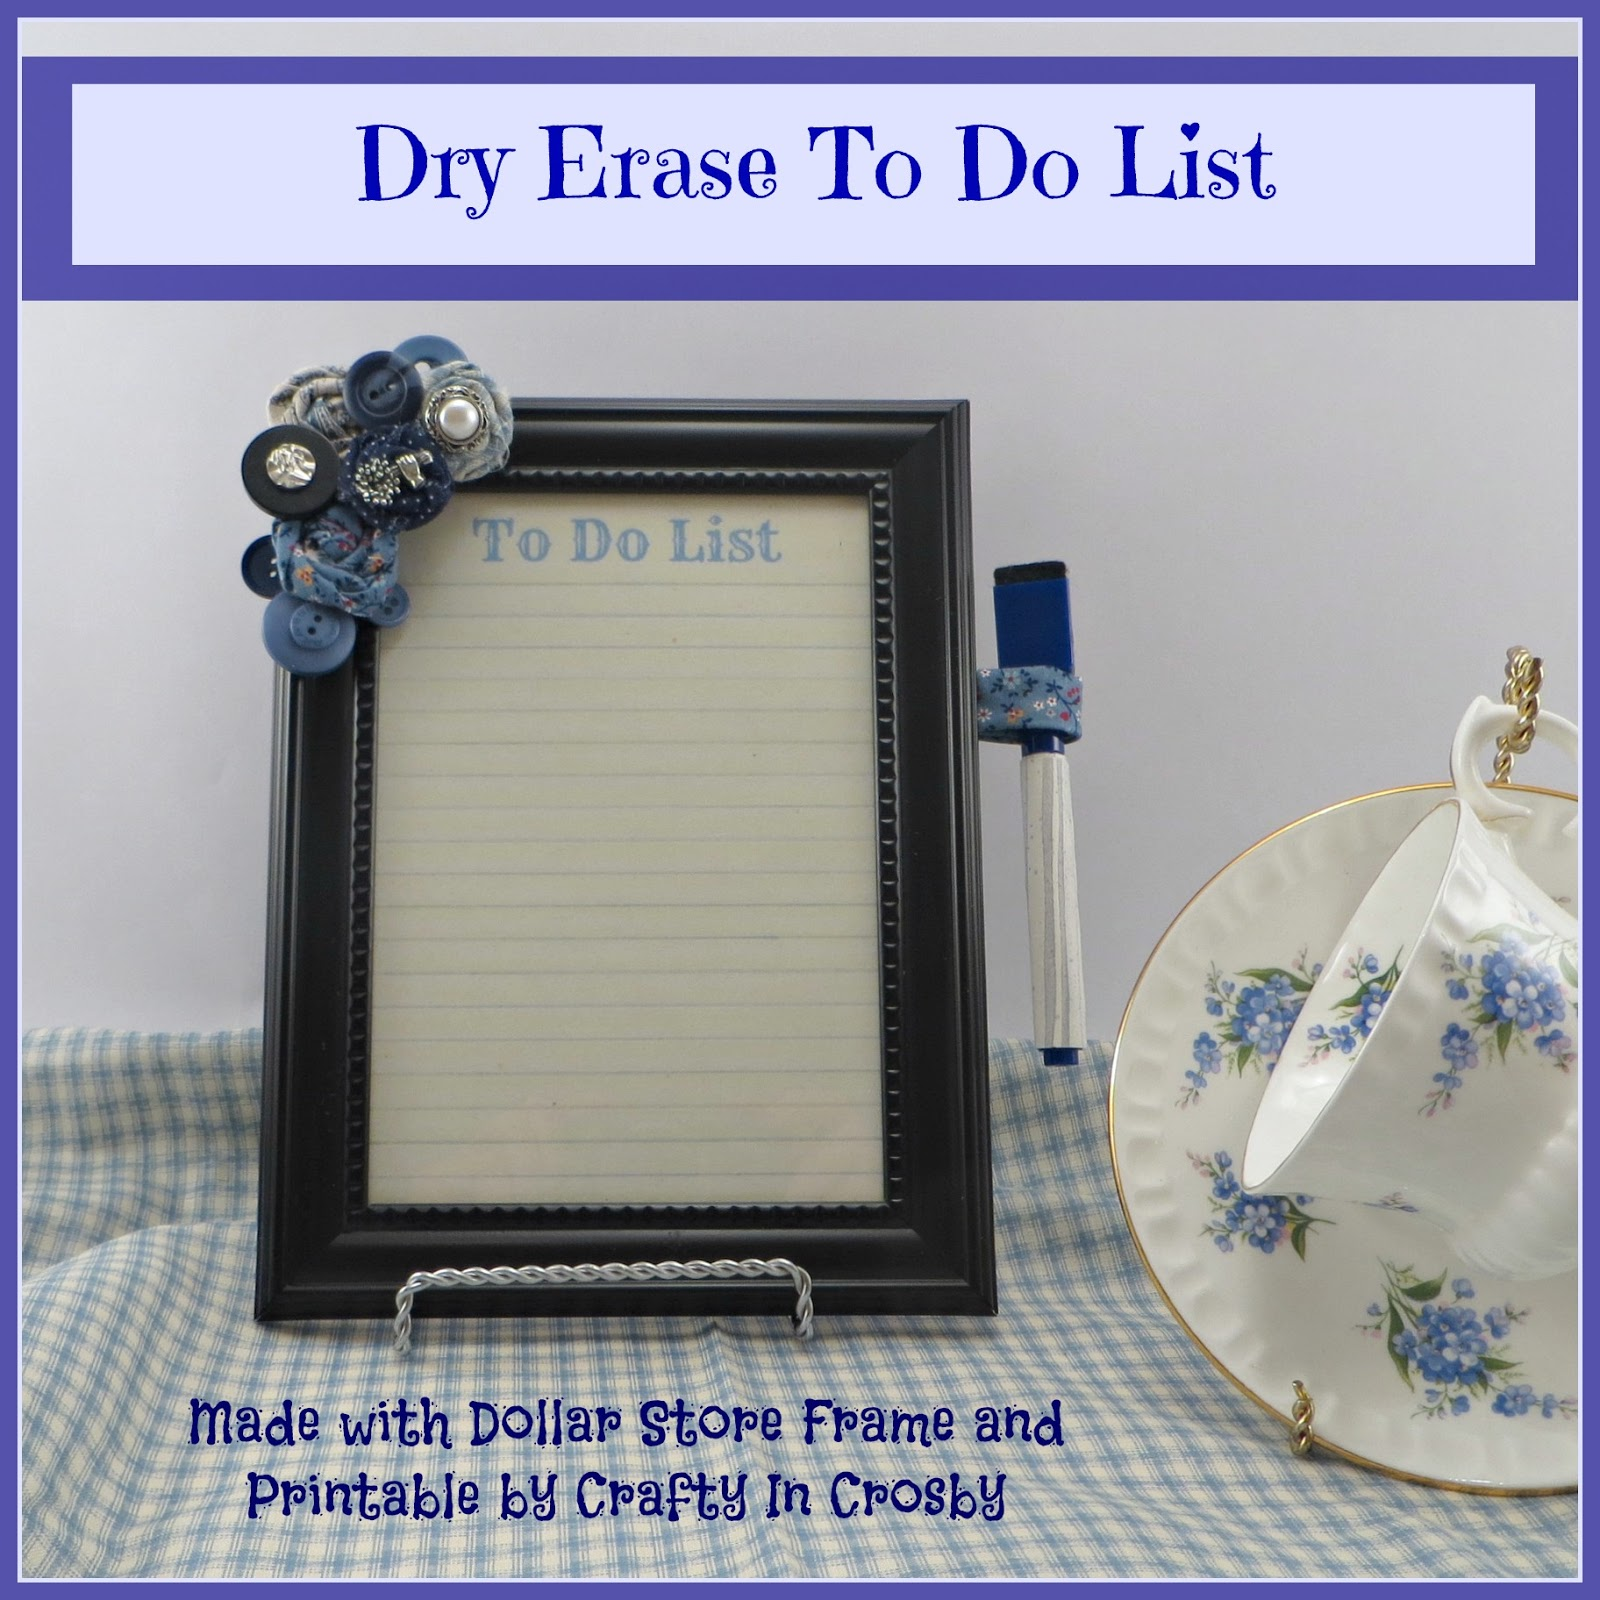 Crafty in Crosby: Dry Erase Boards with $$ Store Frames